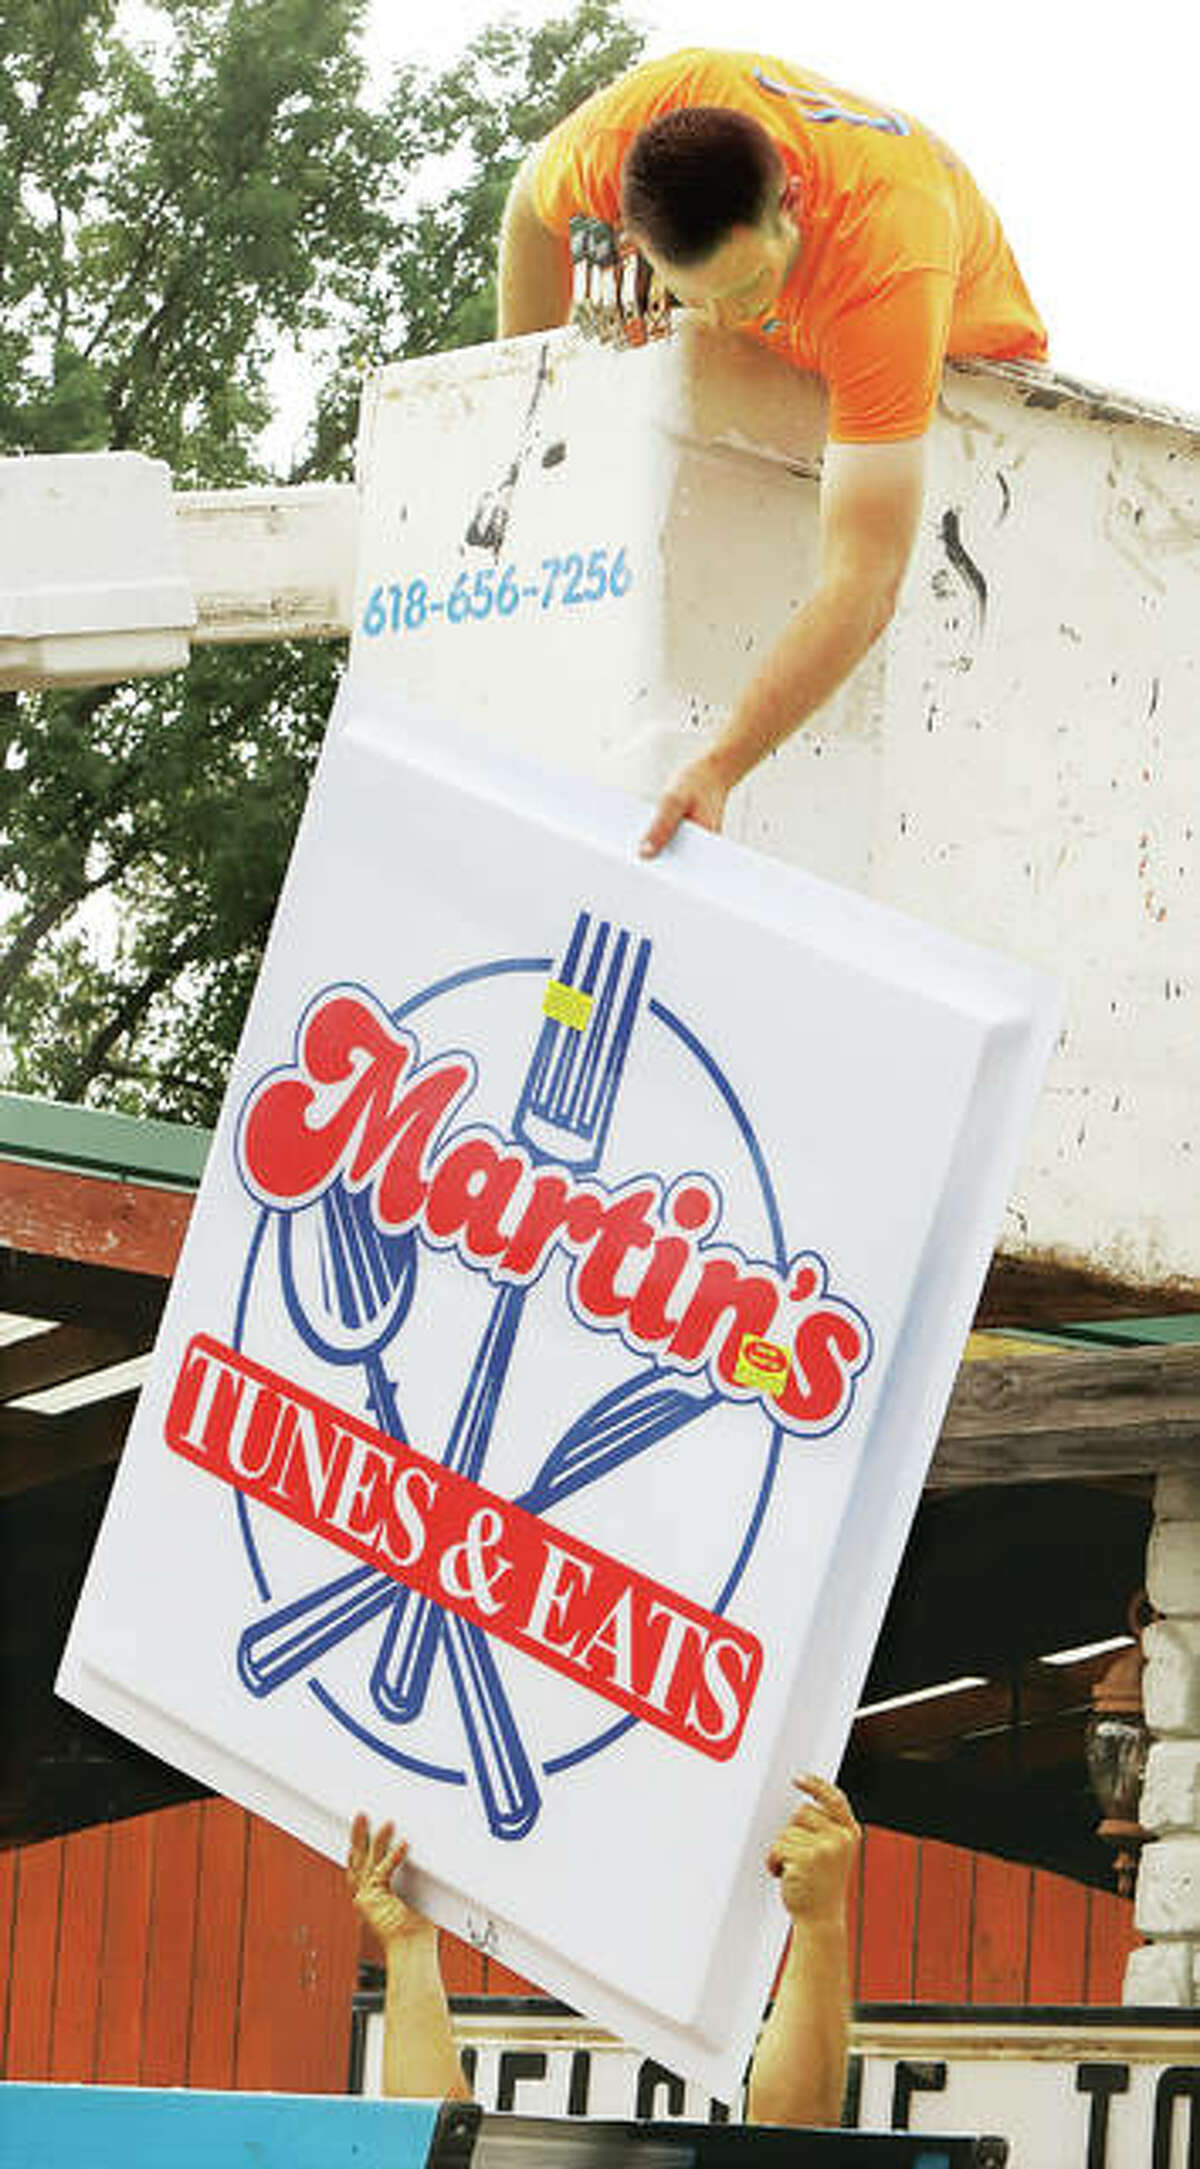 An employee of Eberhart Sign and Lighting prepares to put up the new Martin's Tunes & Eats sign where the former Chico's sign once appeared. - John Badman|The Telegraph